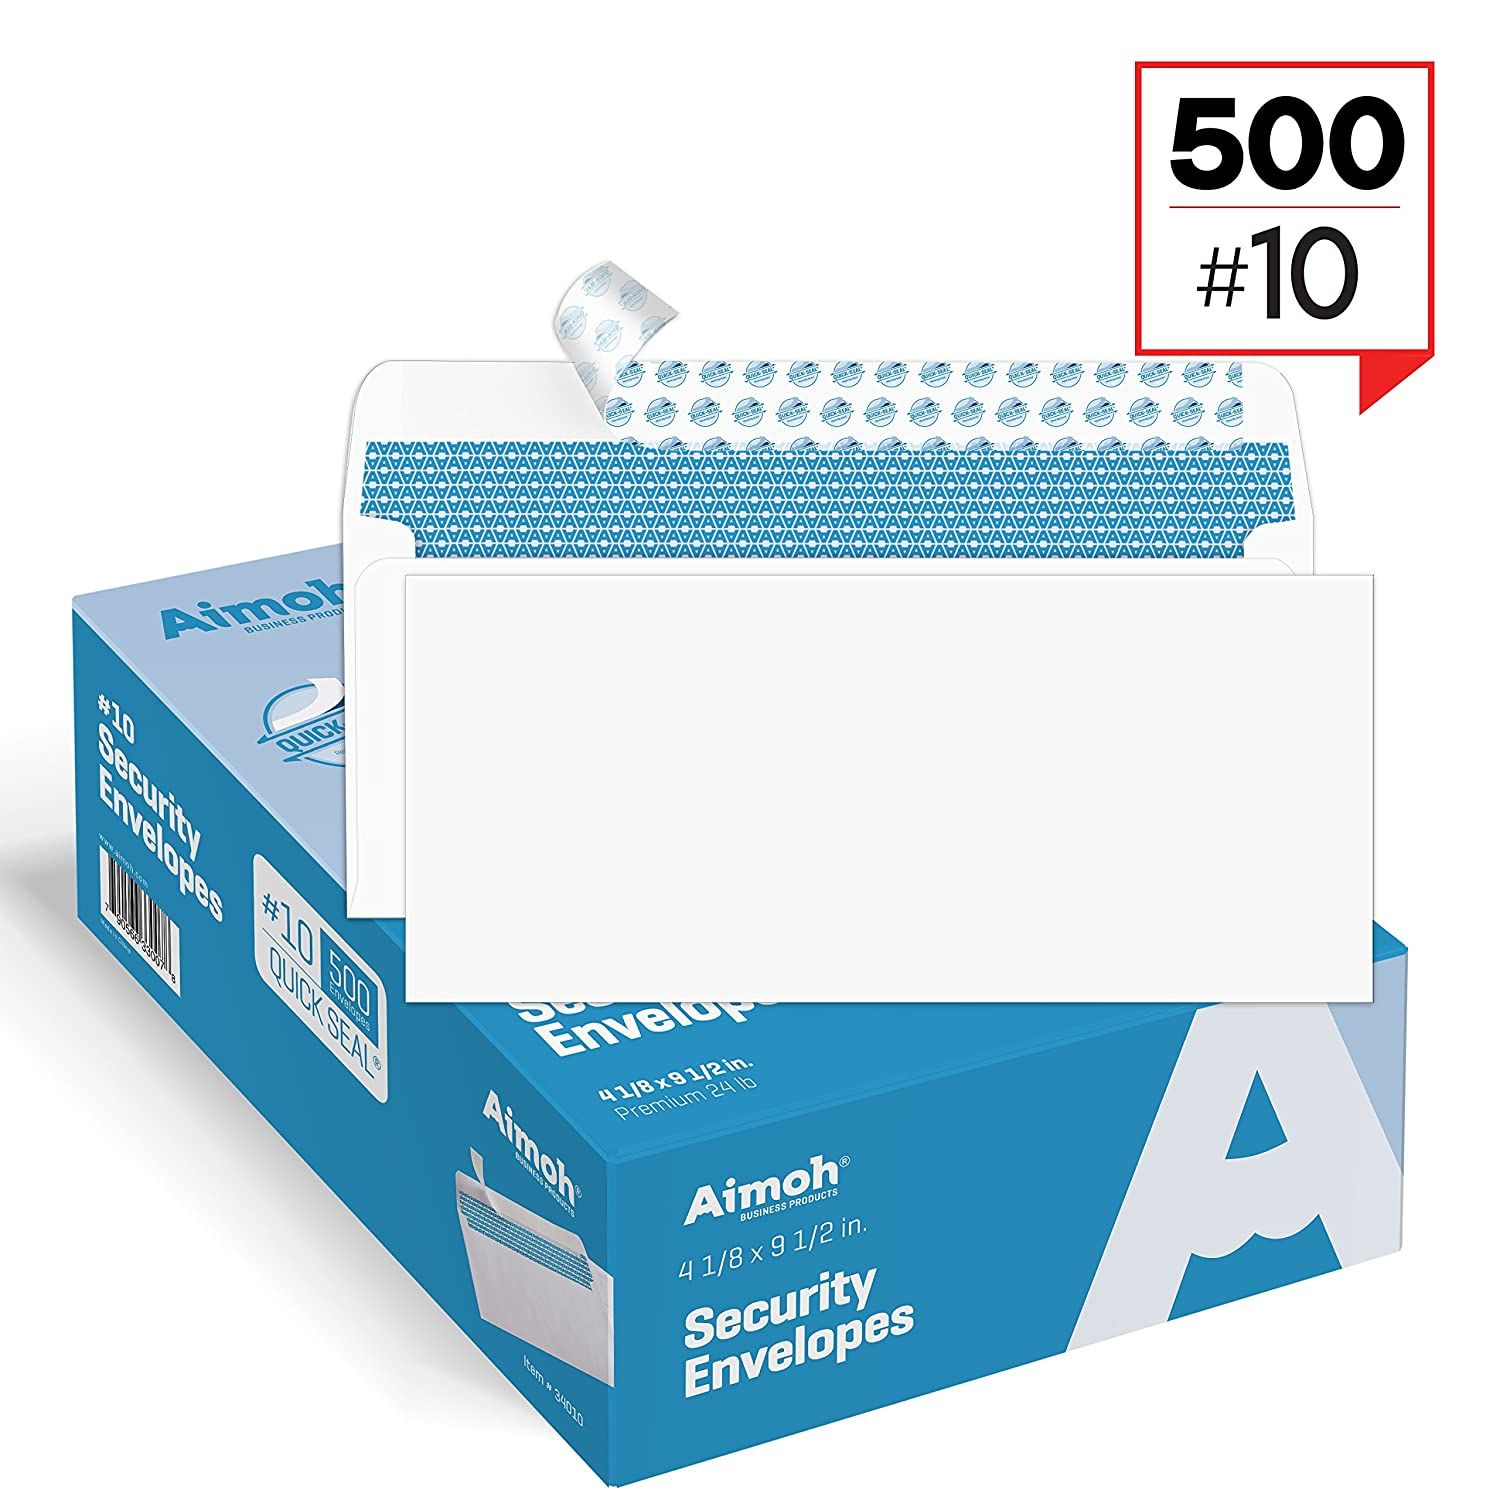 #10 Security SELF-Seal Envelopes, Windowless Design, Premium Security Tint Pattern for Secure Mailing, Ultra Strong Quick-Seal Closure - Size 4-1/8 x 9-1/2 Inches - White - 24 LB - 500 Count (34010) 91hIsia2BGUL